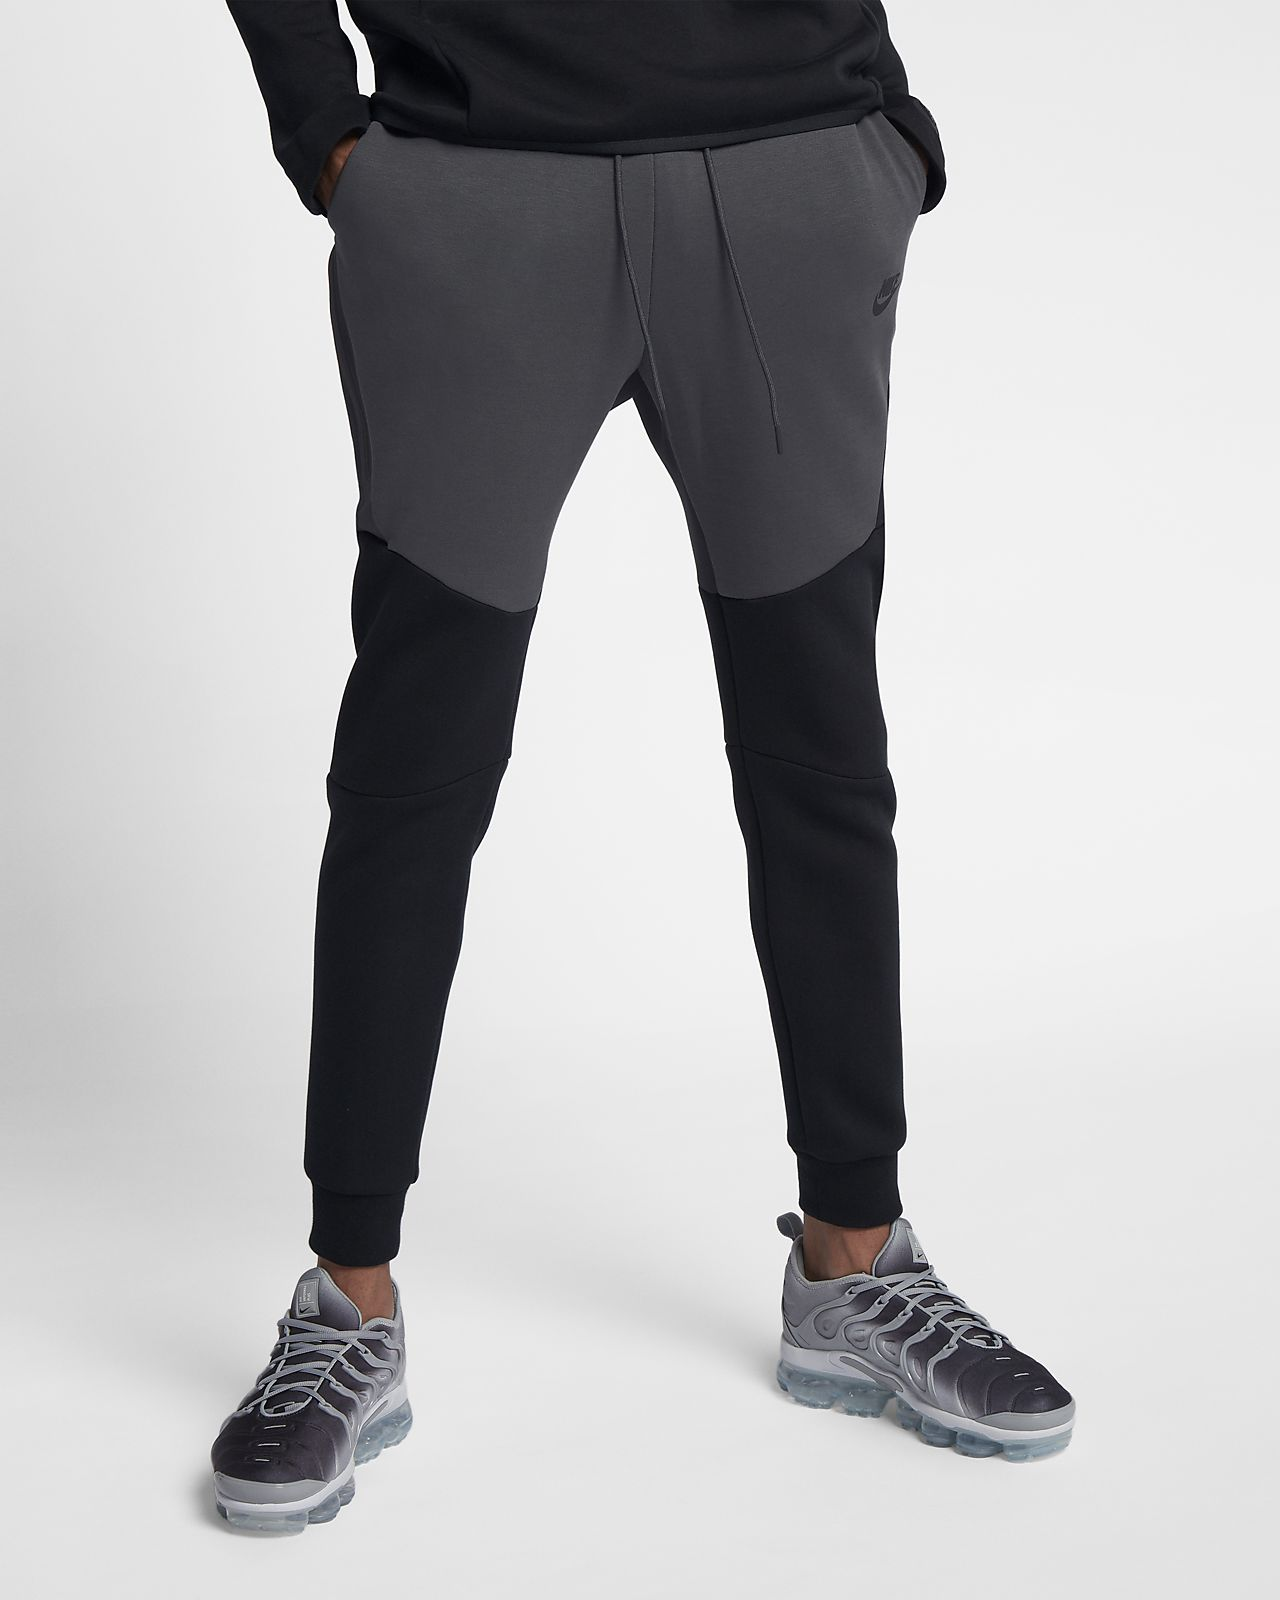 a6398141a05b Nike Sportswear Tech Fleece Men s Joggers. Nike.com GB